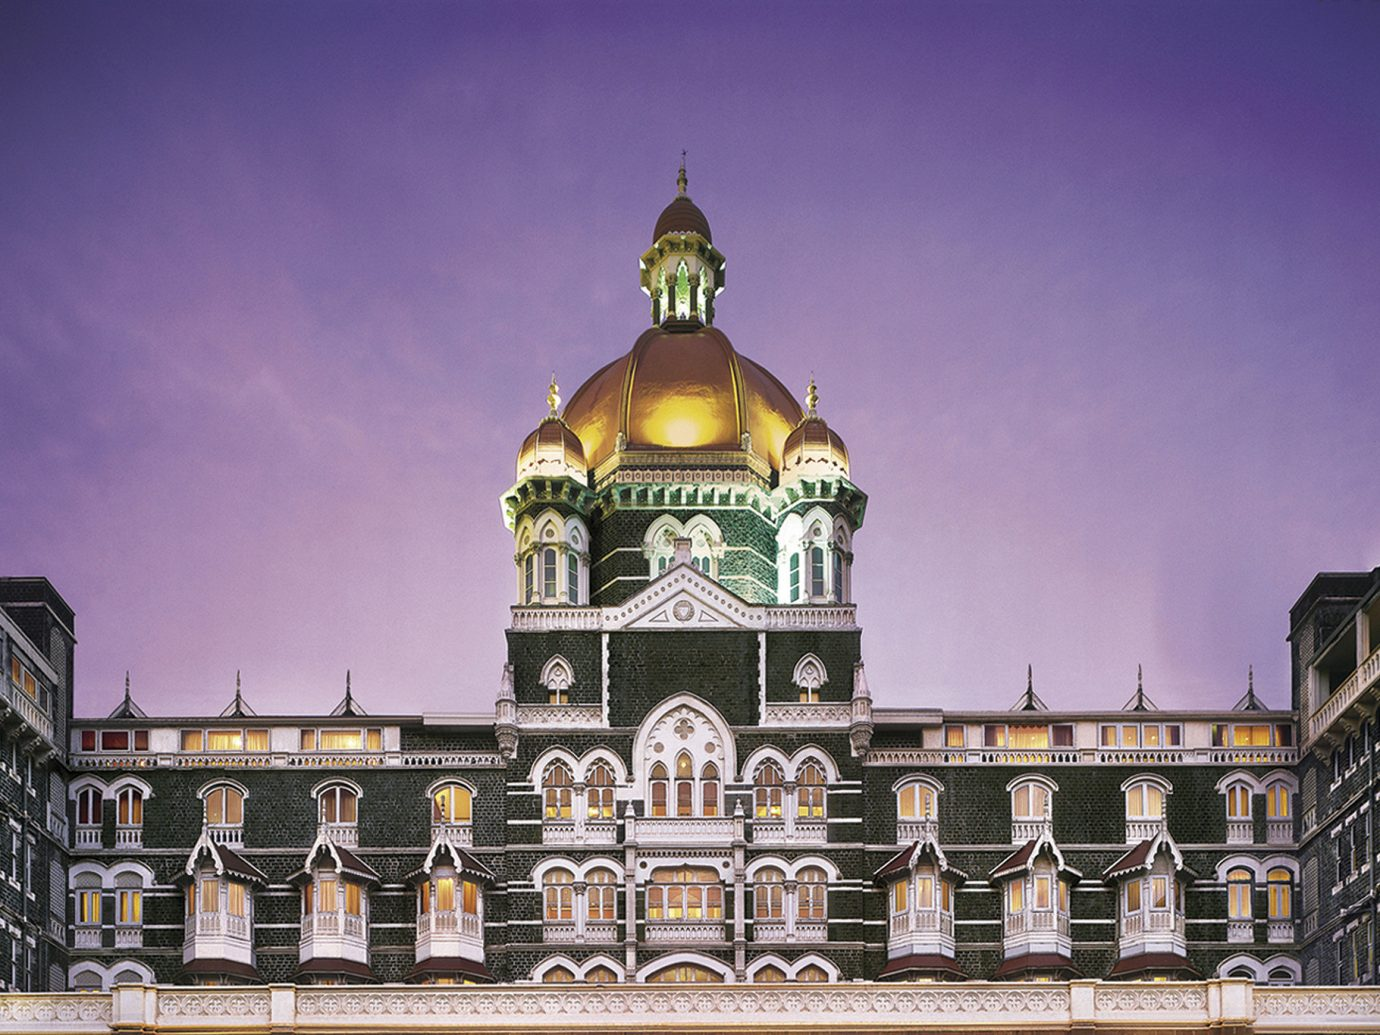 Hotels Luxury Travel building sky outdoor landmark tourist attraction metropolis château City palace facade town square metropolitan area night monument tourism dome symmetry clock tower historic site evening classical architecture tower seat of local government plaza